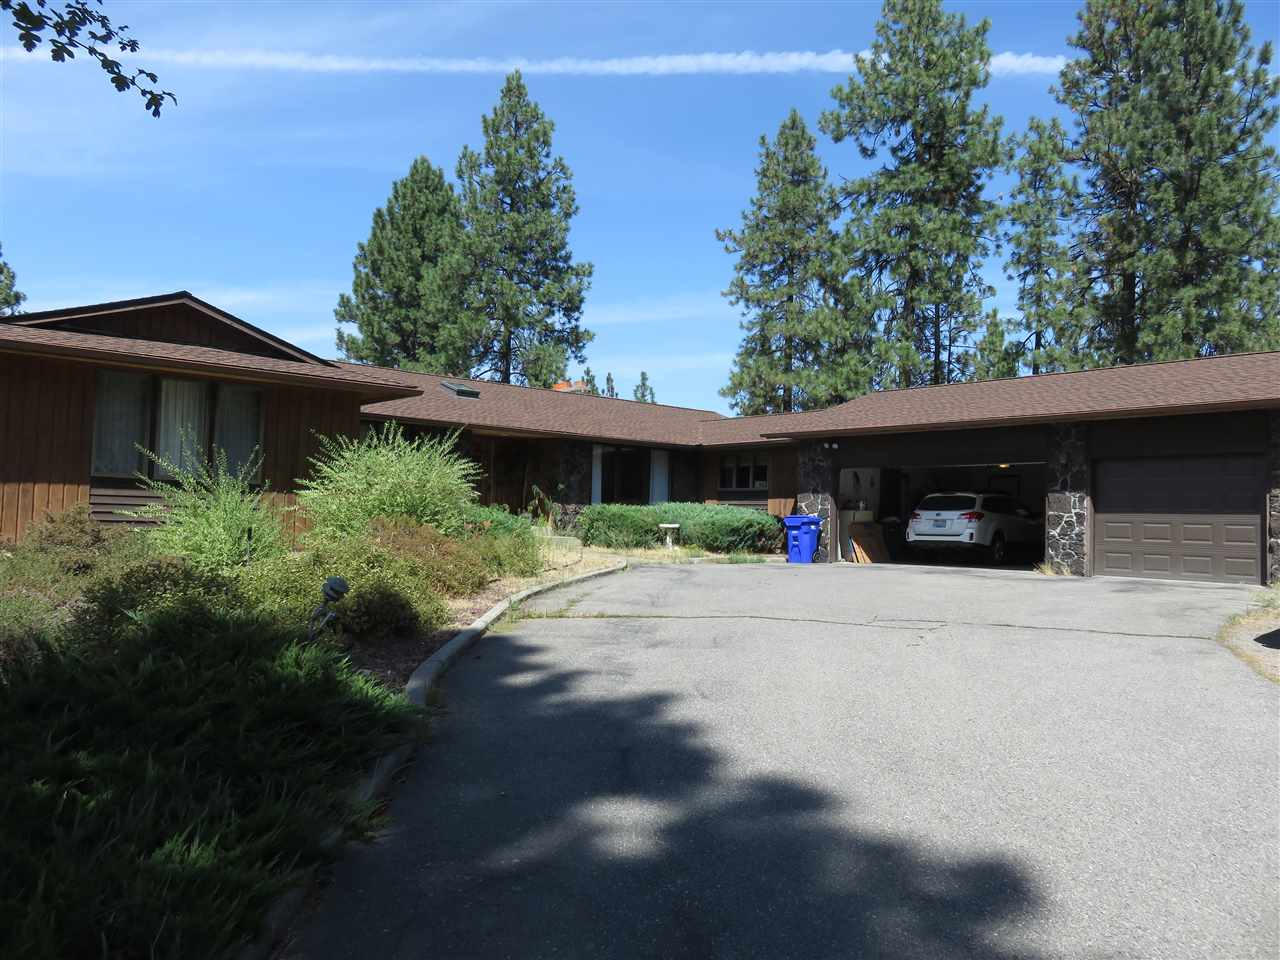 Single Family Home for Sale at 4317 S BALL Road 4317 S BALL Road Veradale, Washington 99037 United States